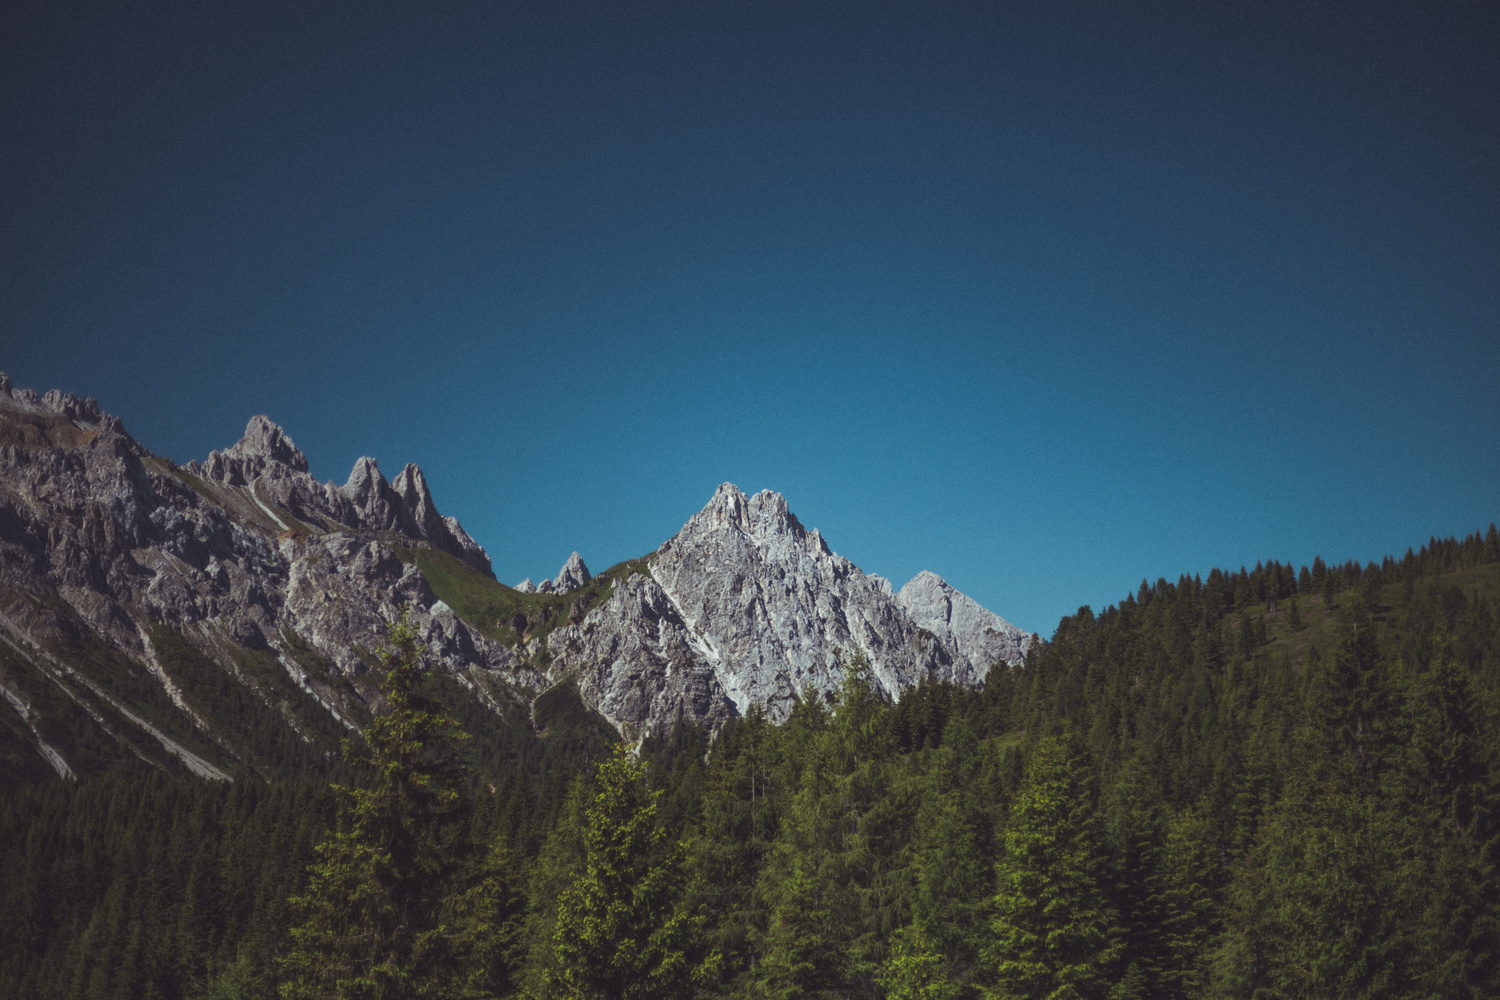 The Dolomites #4 by Diogo Linhares